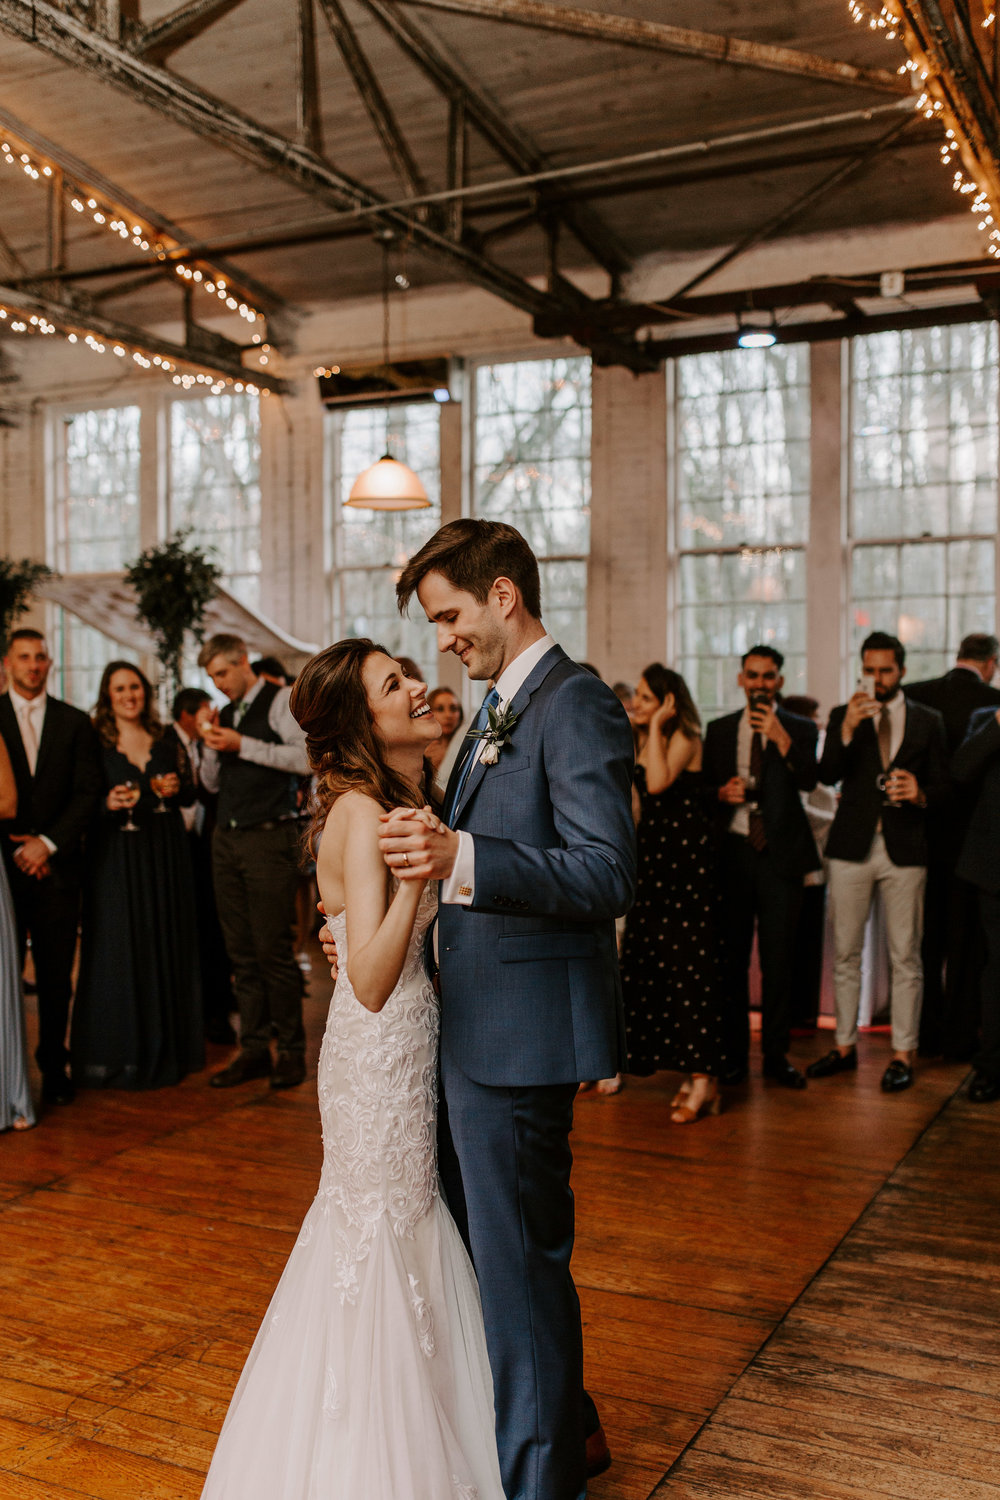 First dance with the bride and groom - Pearl Weddings & Events